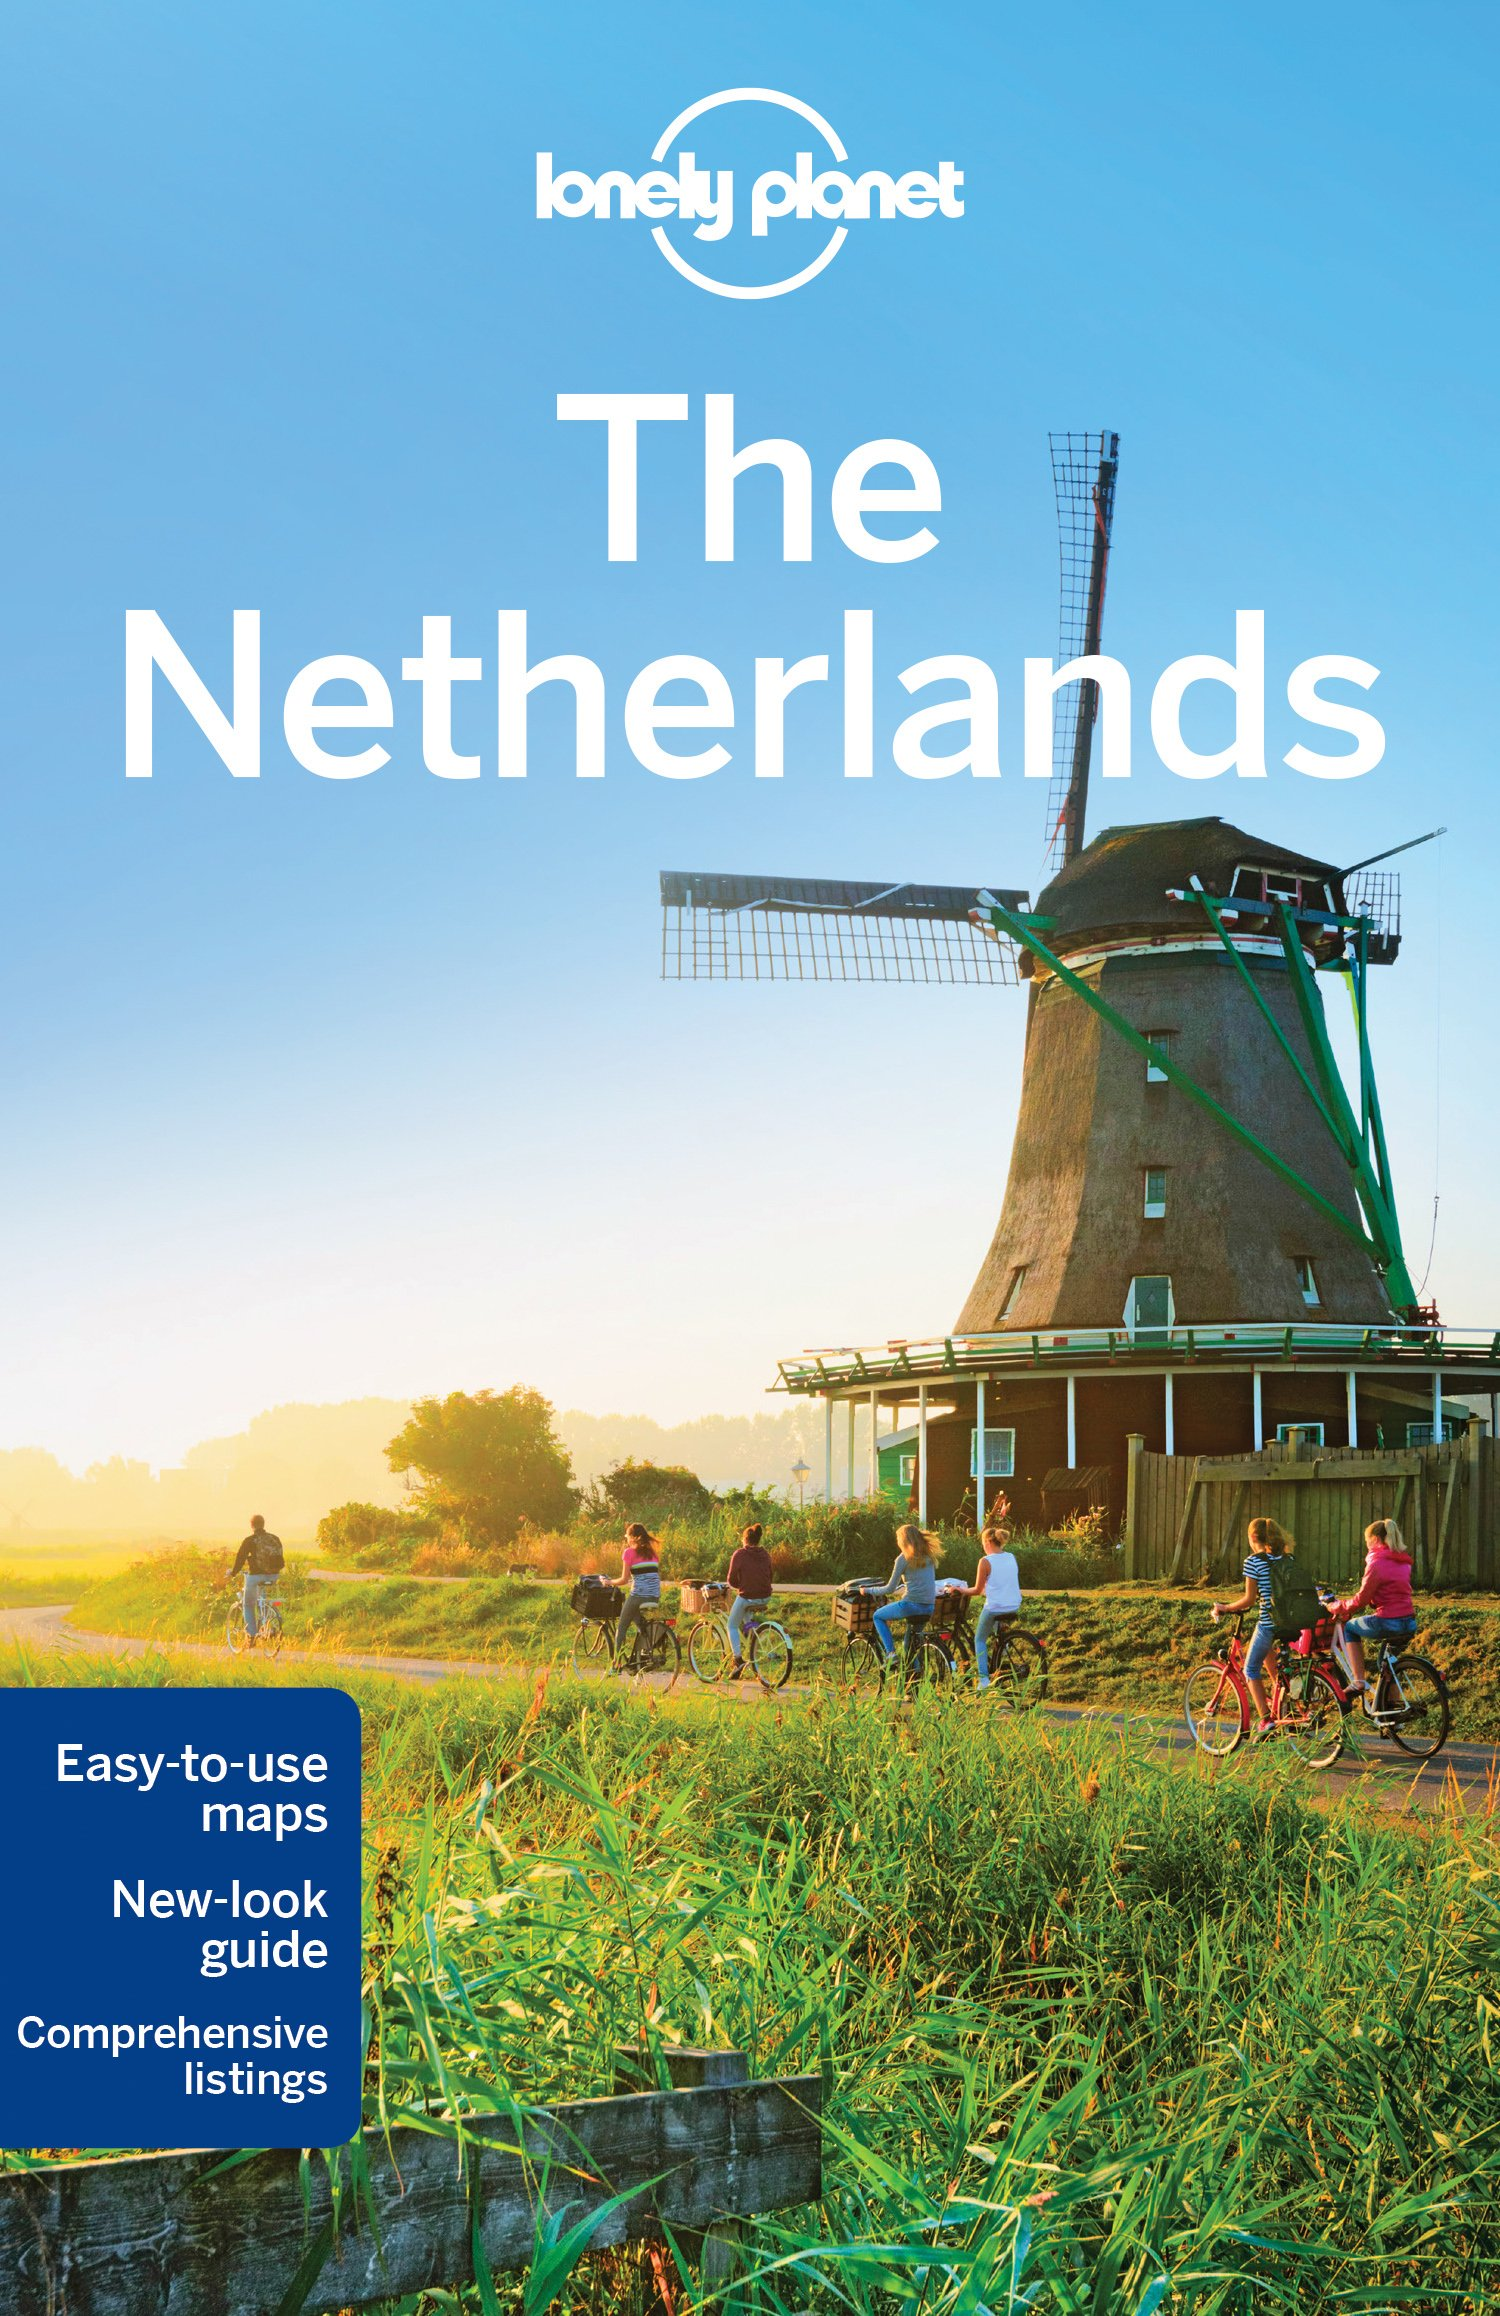 Lonely Planet The Netherlands (Travel Guide) by LONELY PLANET PUBLICATIONS